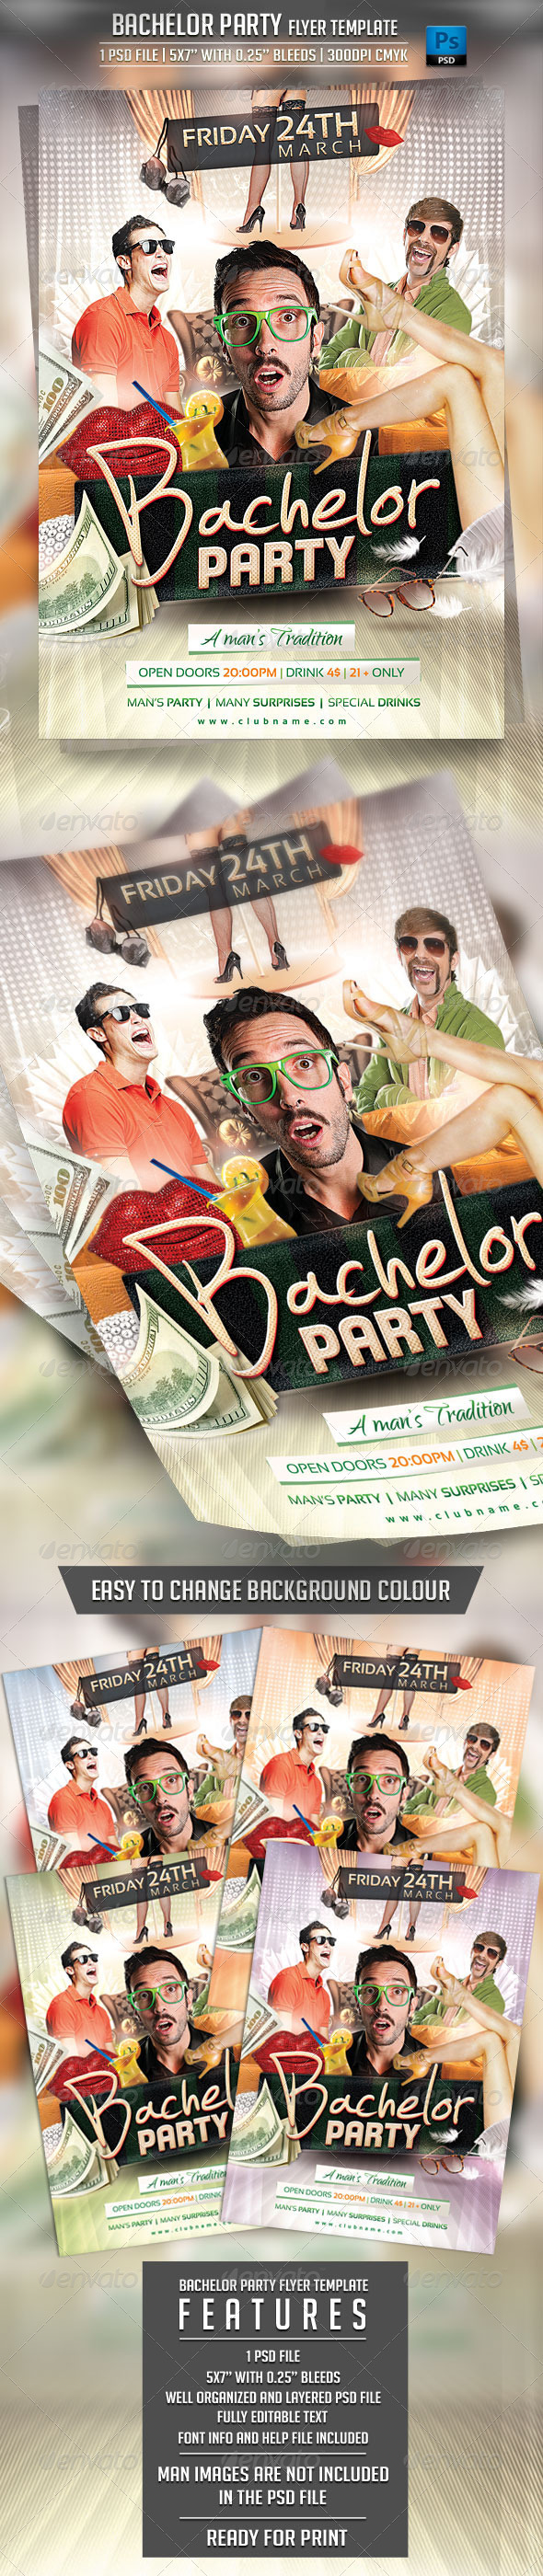 Bachelor Party Flyer Template - Clubs & Parties Events